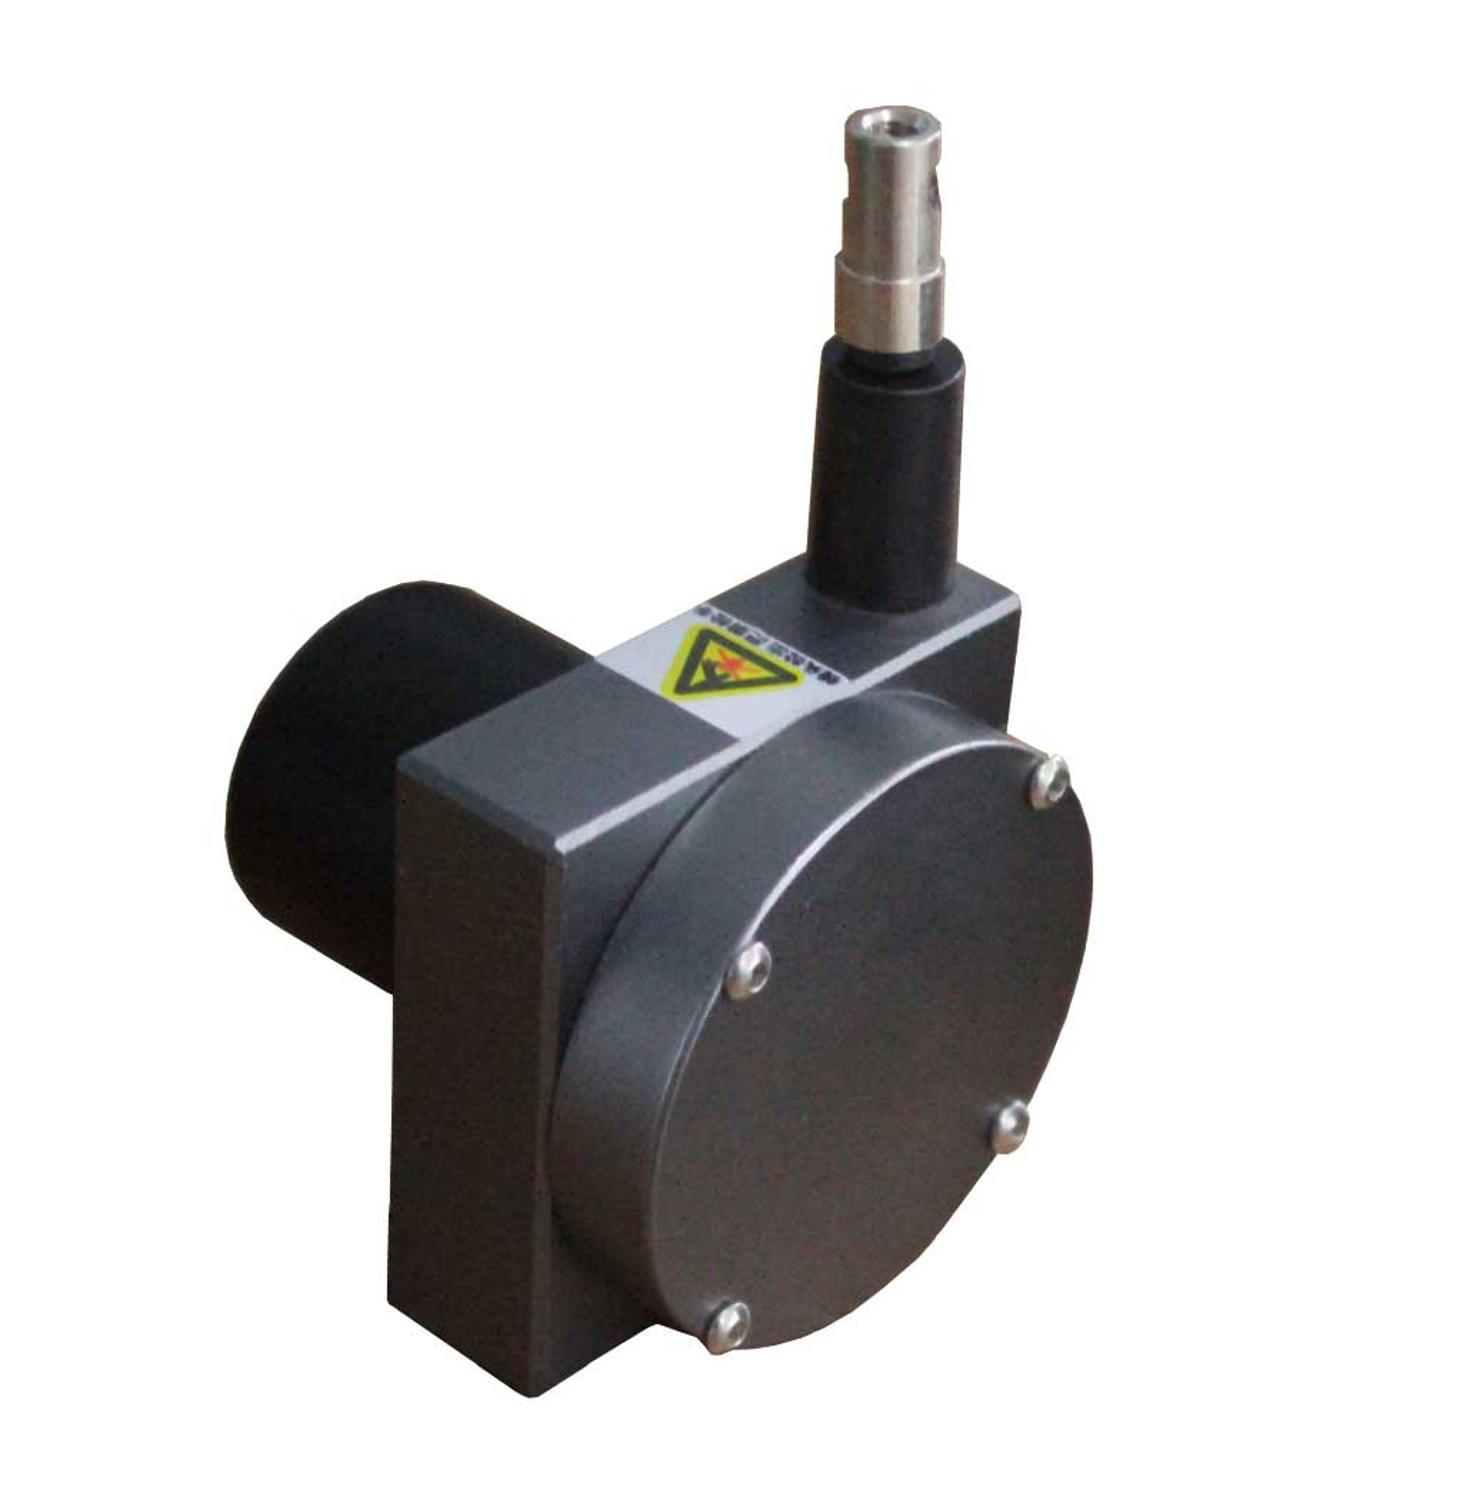 WXY60-LWXY80-L Drawstring Displacement Cable Sensor Encoder Gate Opener High Precision RS485 Communication Signal